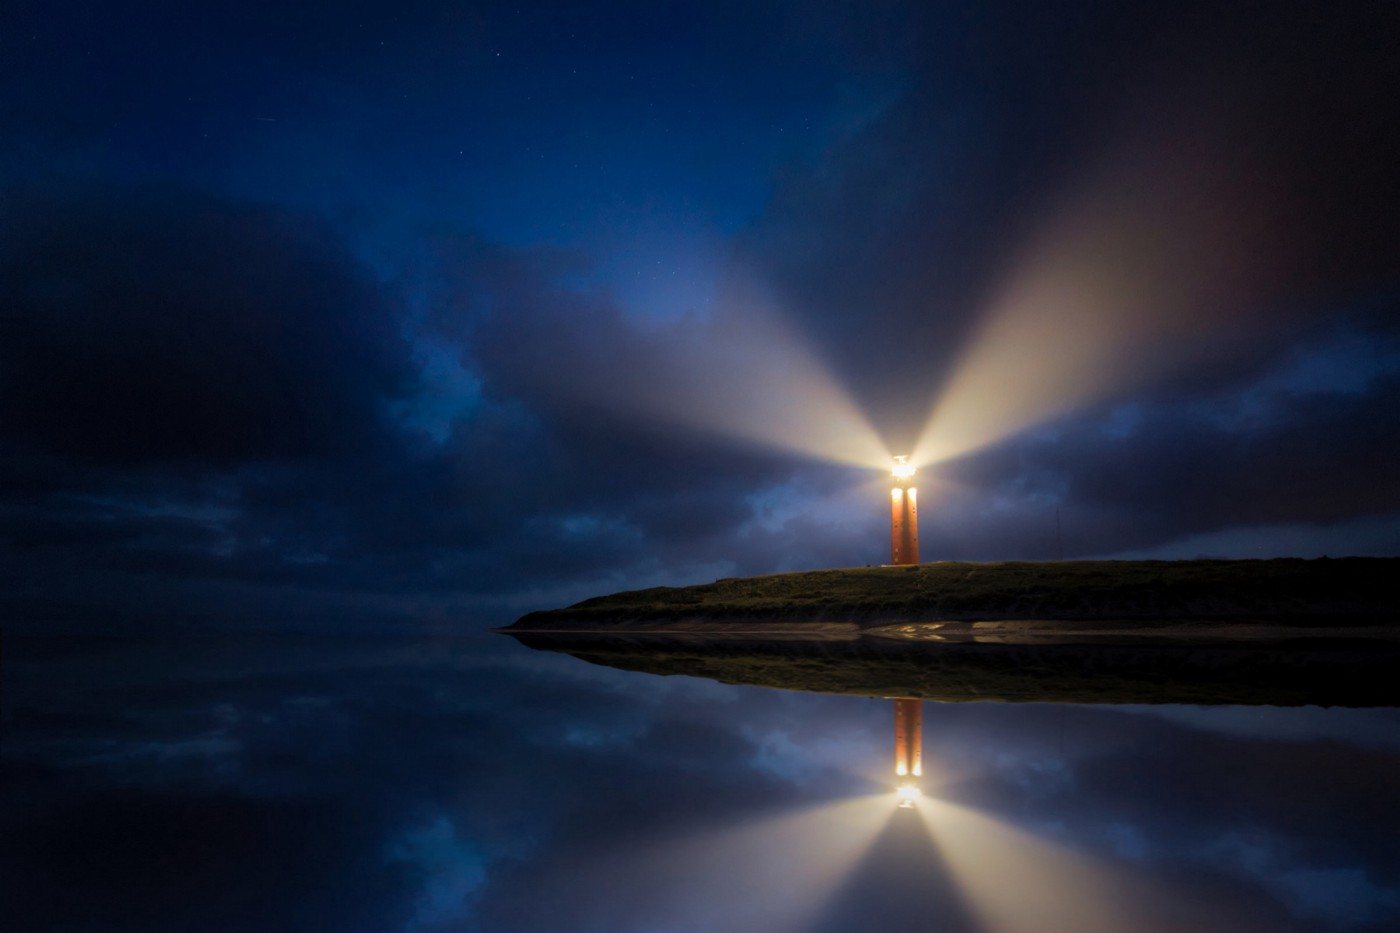 lighthouse image to present too much depth and hidden things